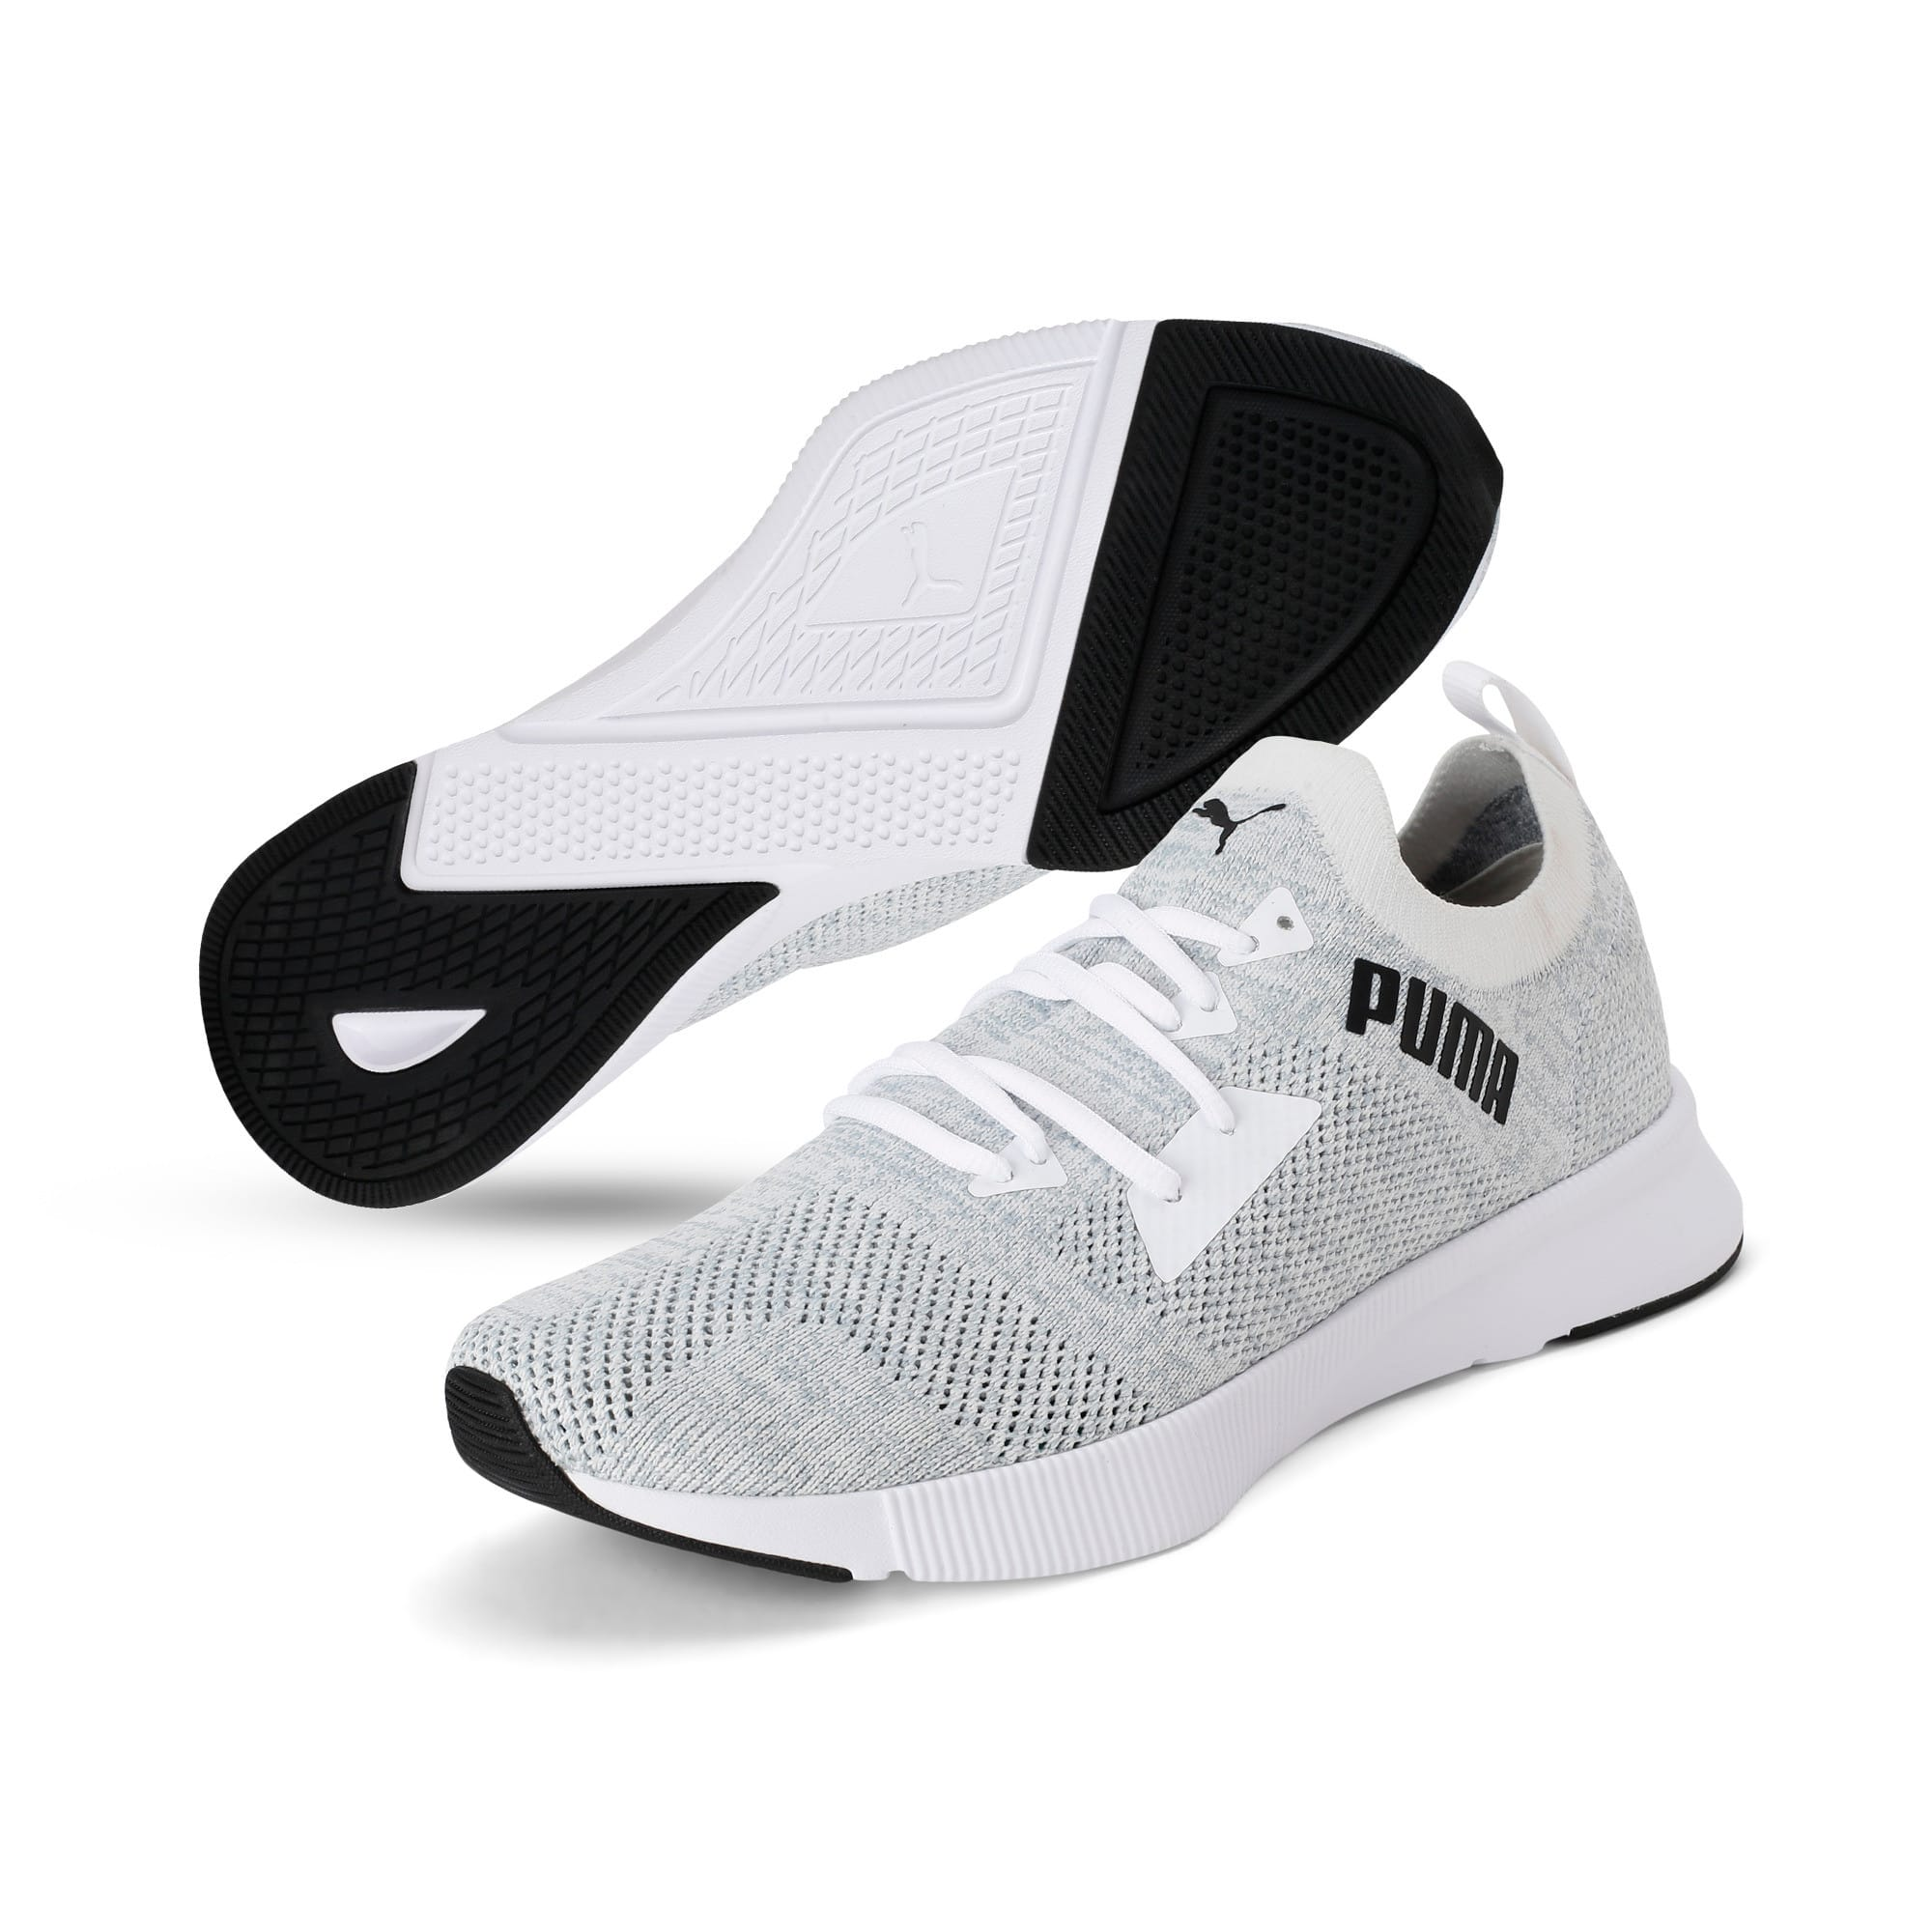 Thumbnail 2 of Flyer Runner Engineered Knit Men's Running Shoes, Puma White-Quarry-Puma Black, medium-IND